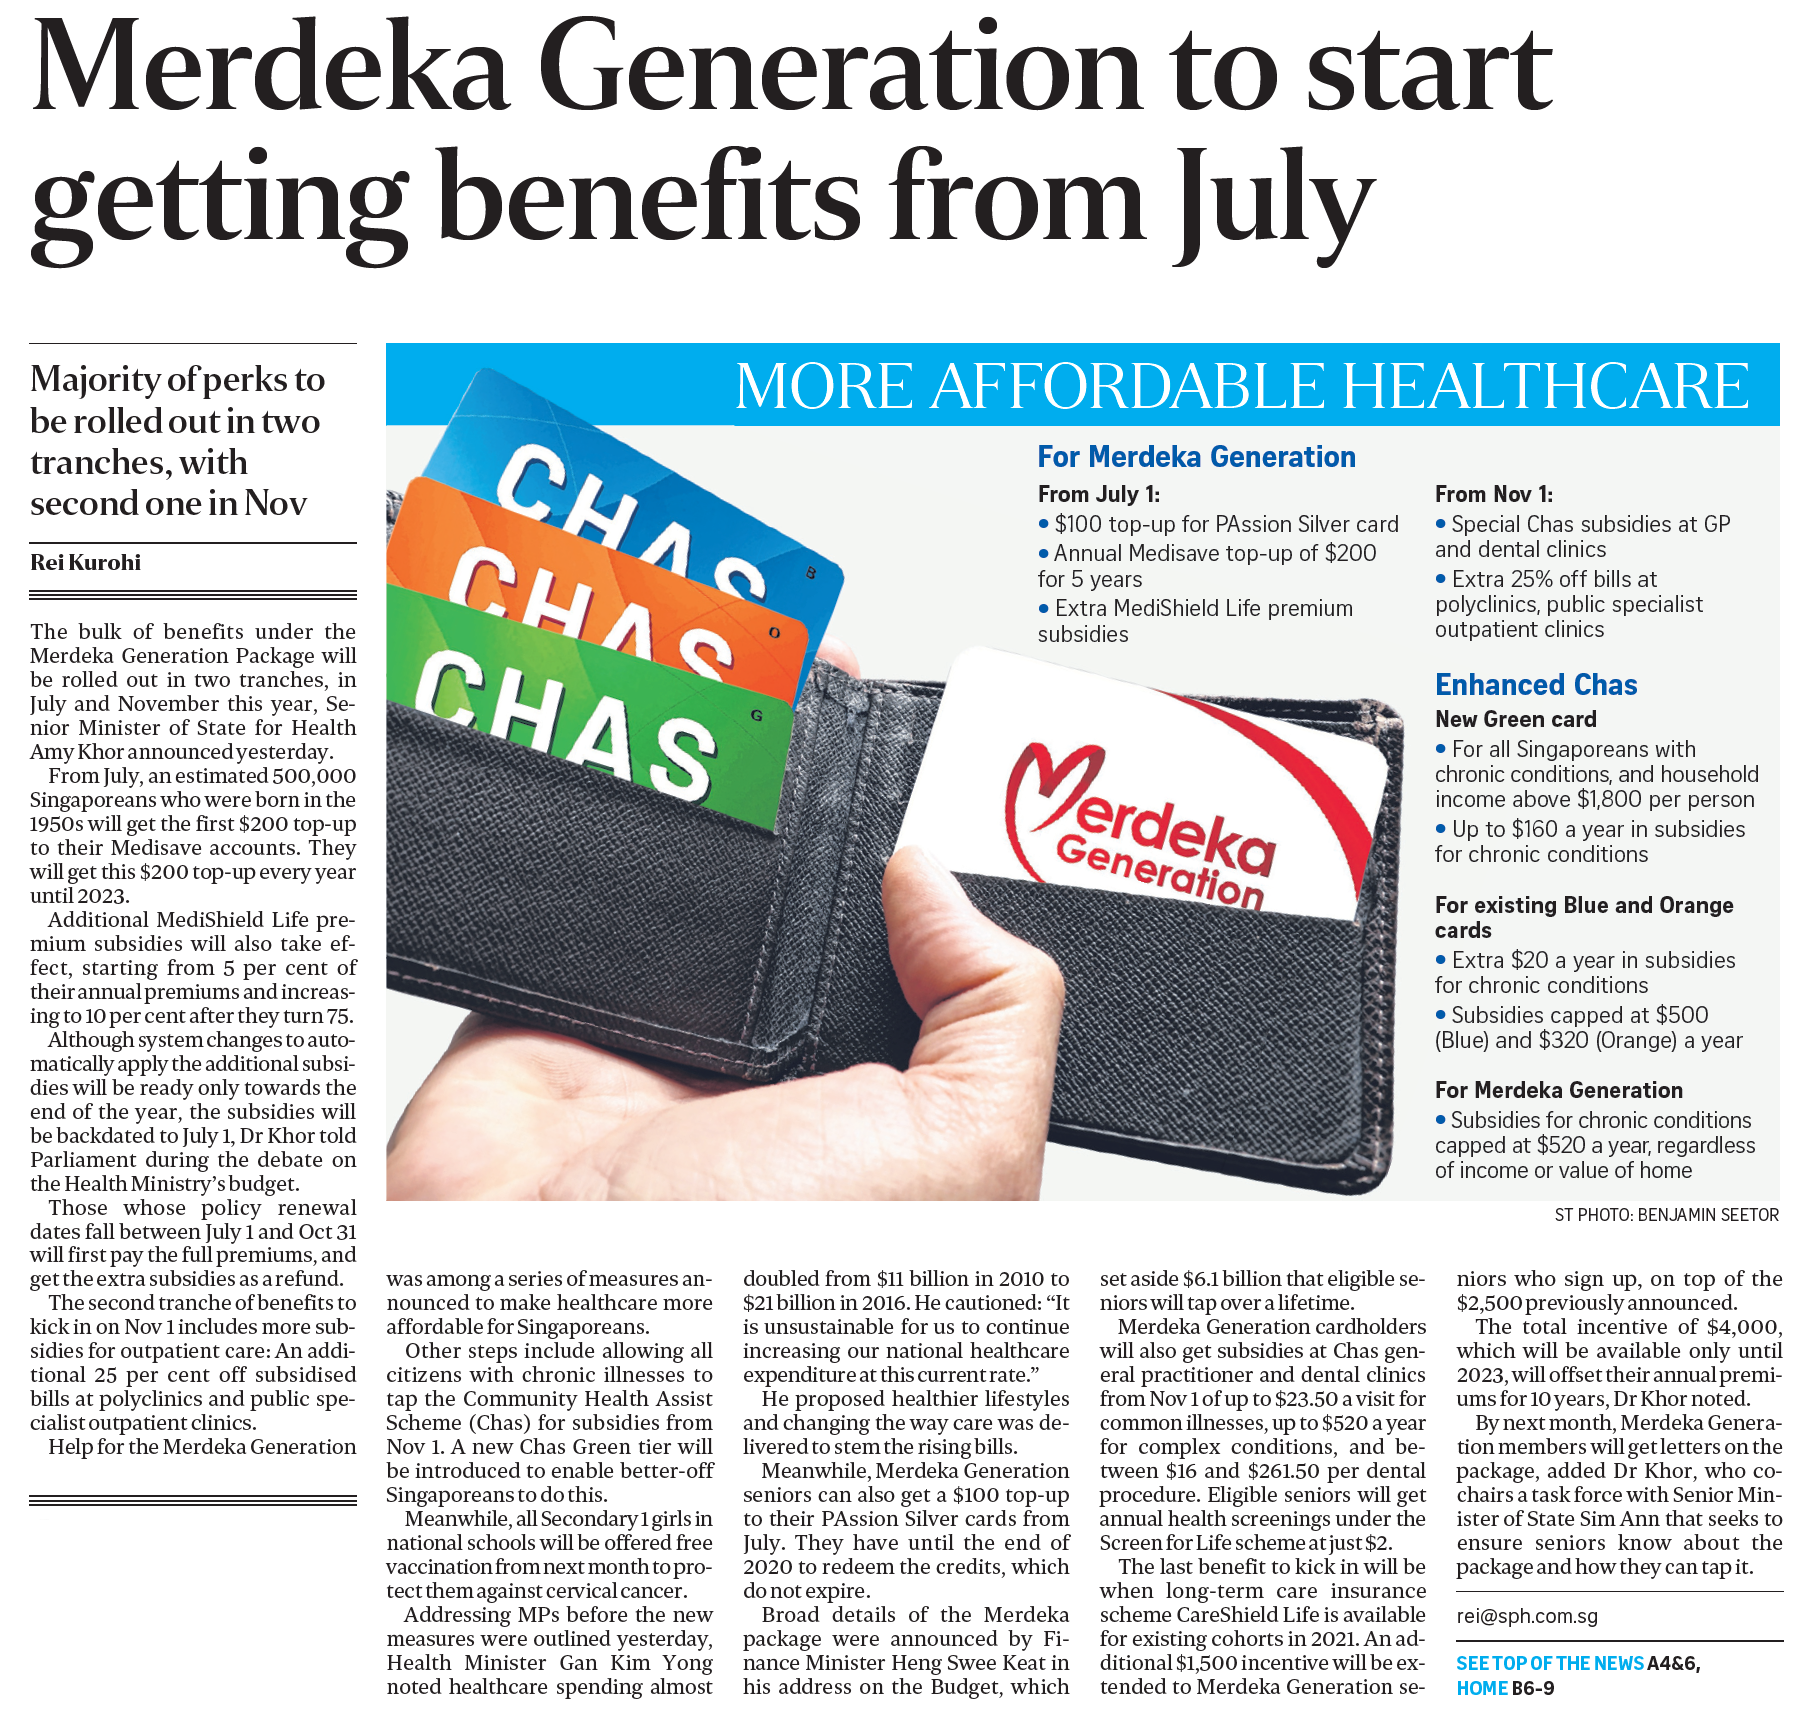 Merdeka Generation to start getting benefits from July (The Straits Times, 7 March 2019, pA1)